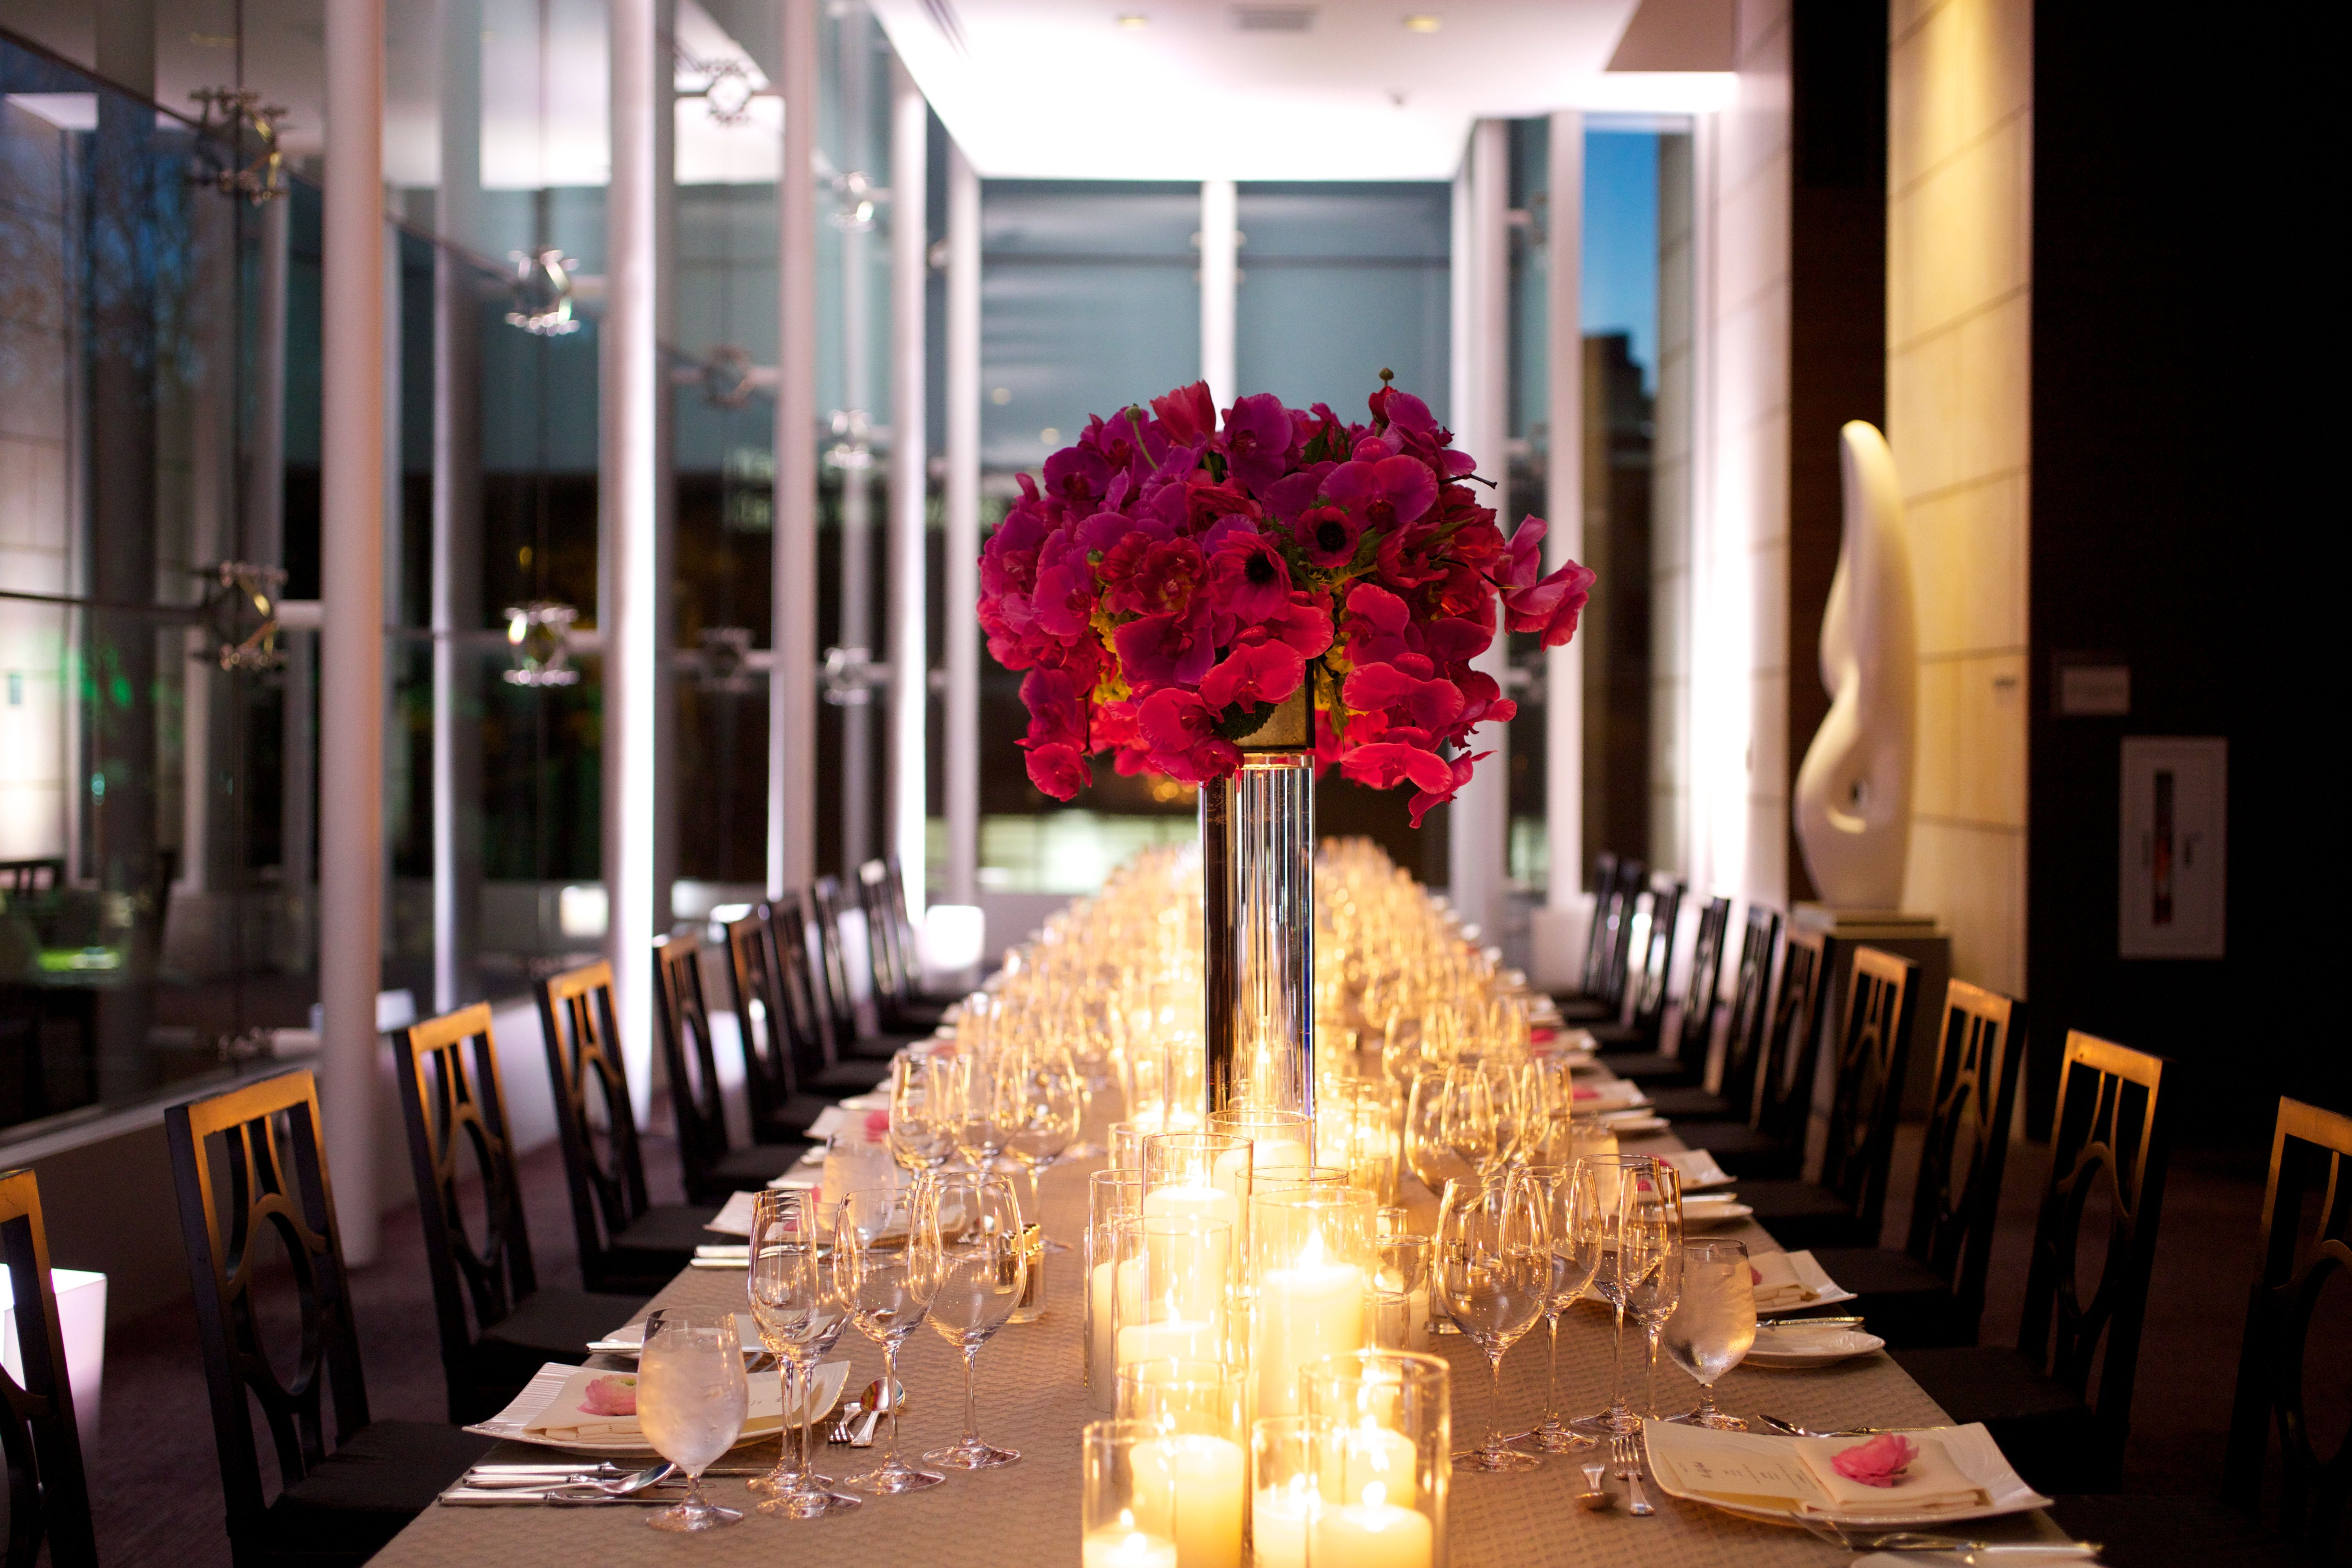 An intimate wedding reception set up in the Sculpture Event Space at The St. Regis San Francisco